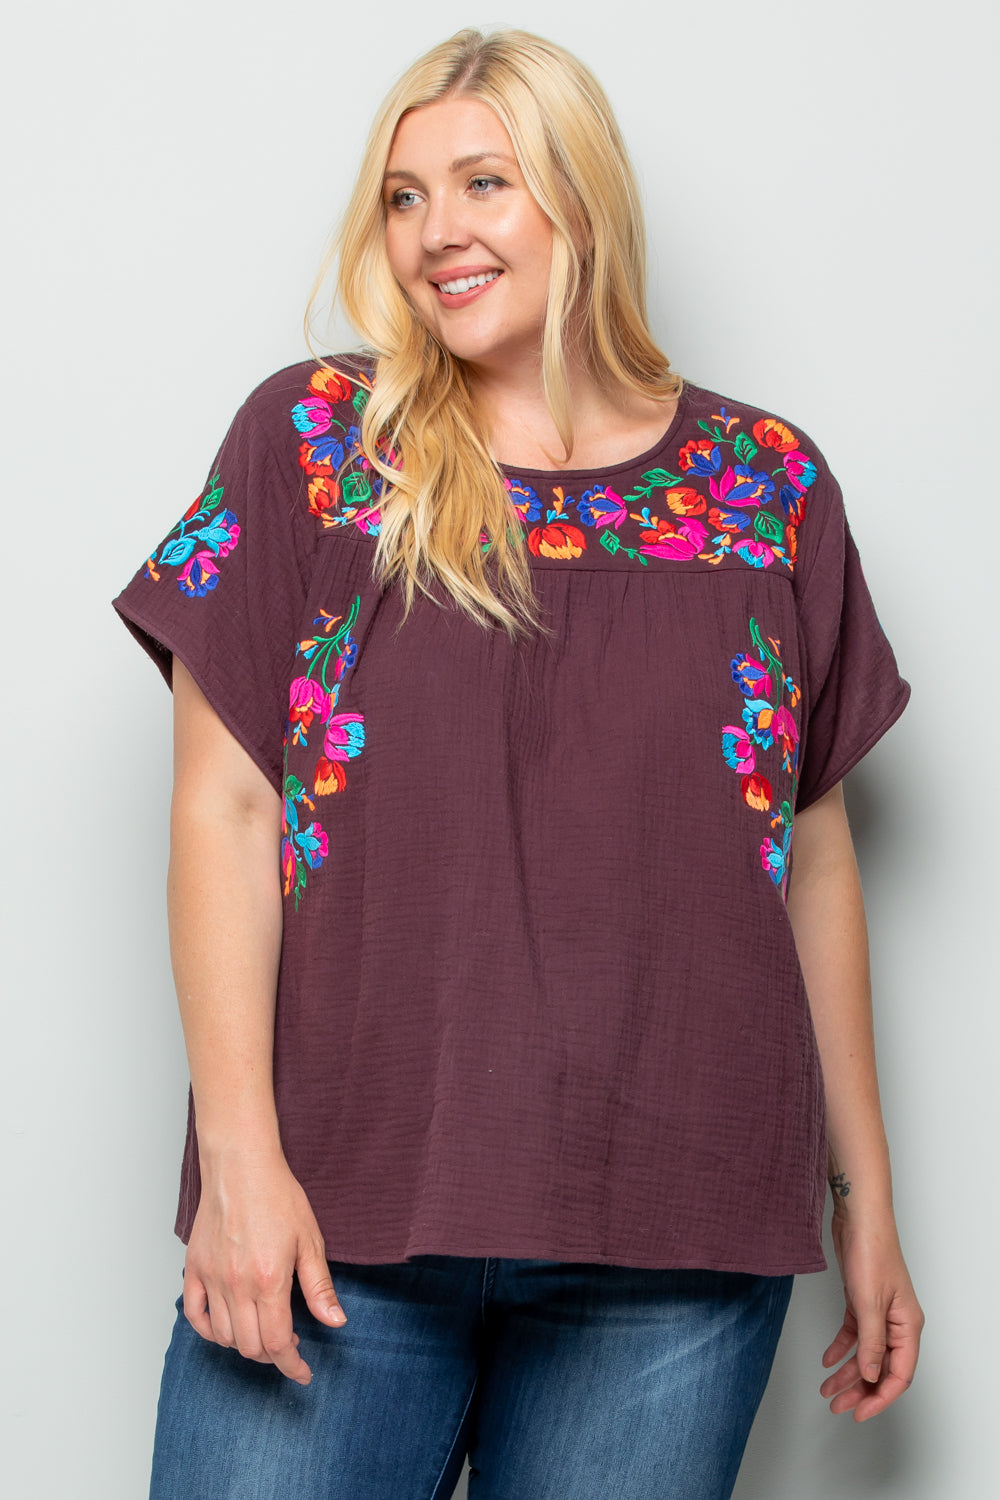 WT2185 Embroidery  Top - BURGUNDY